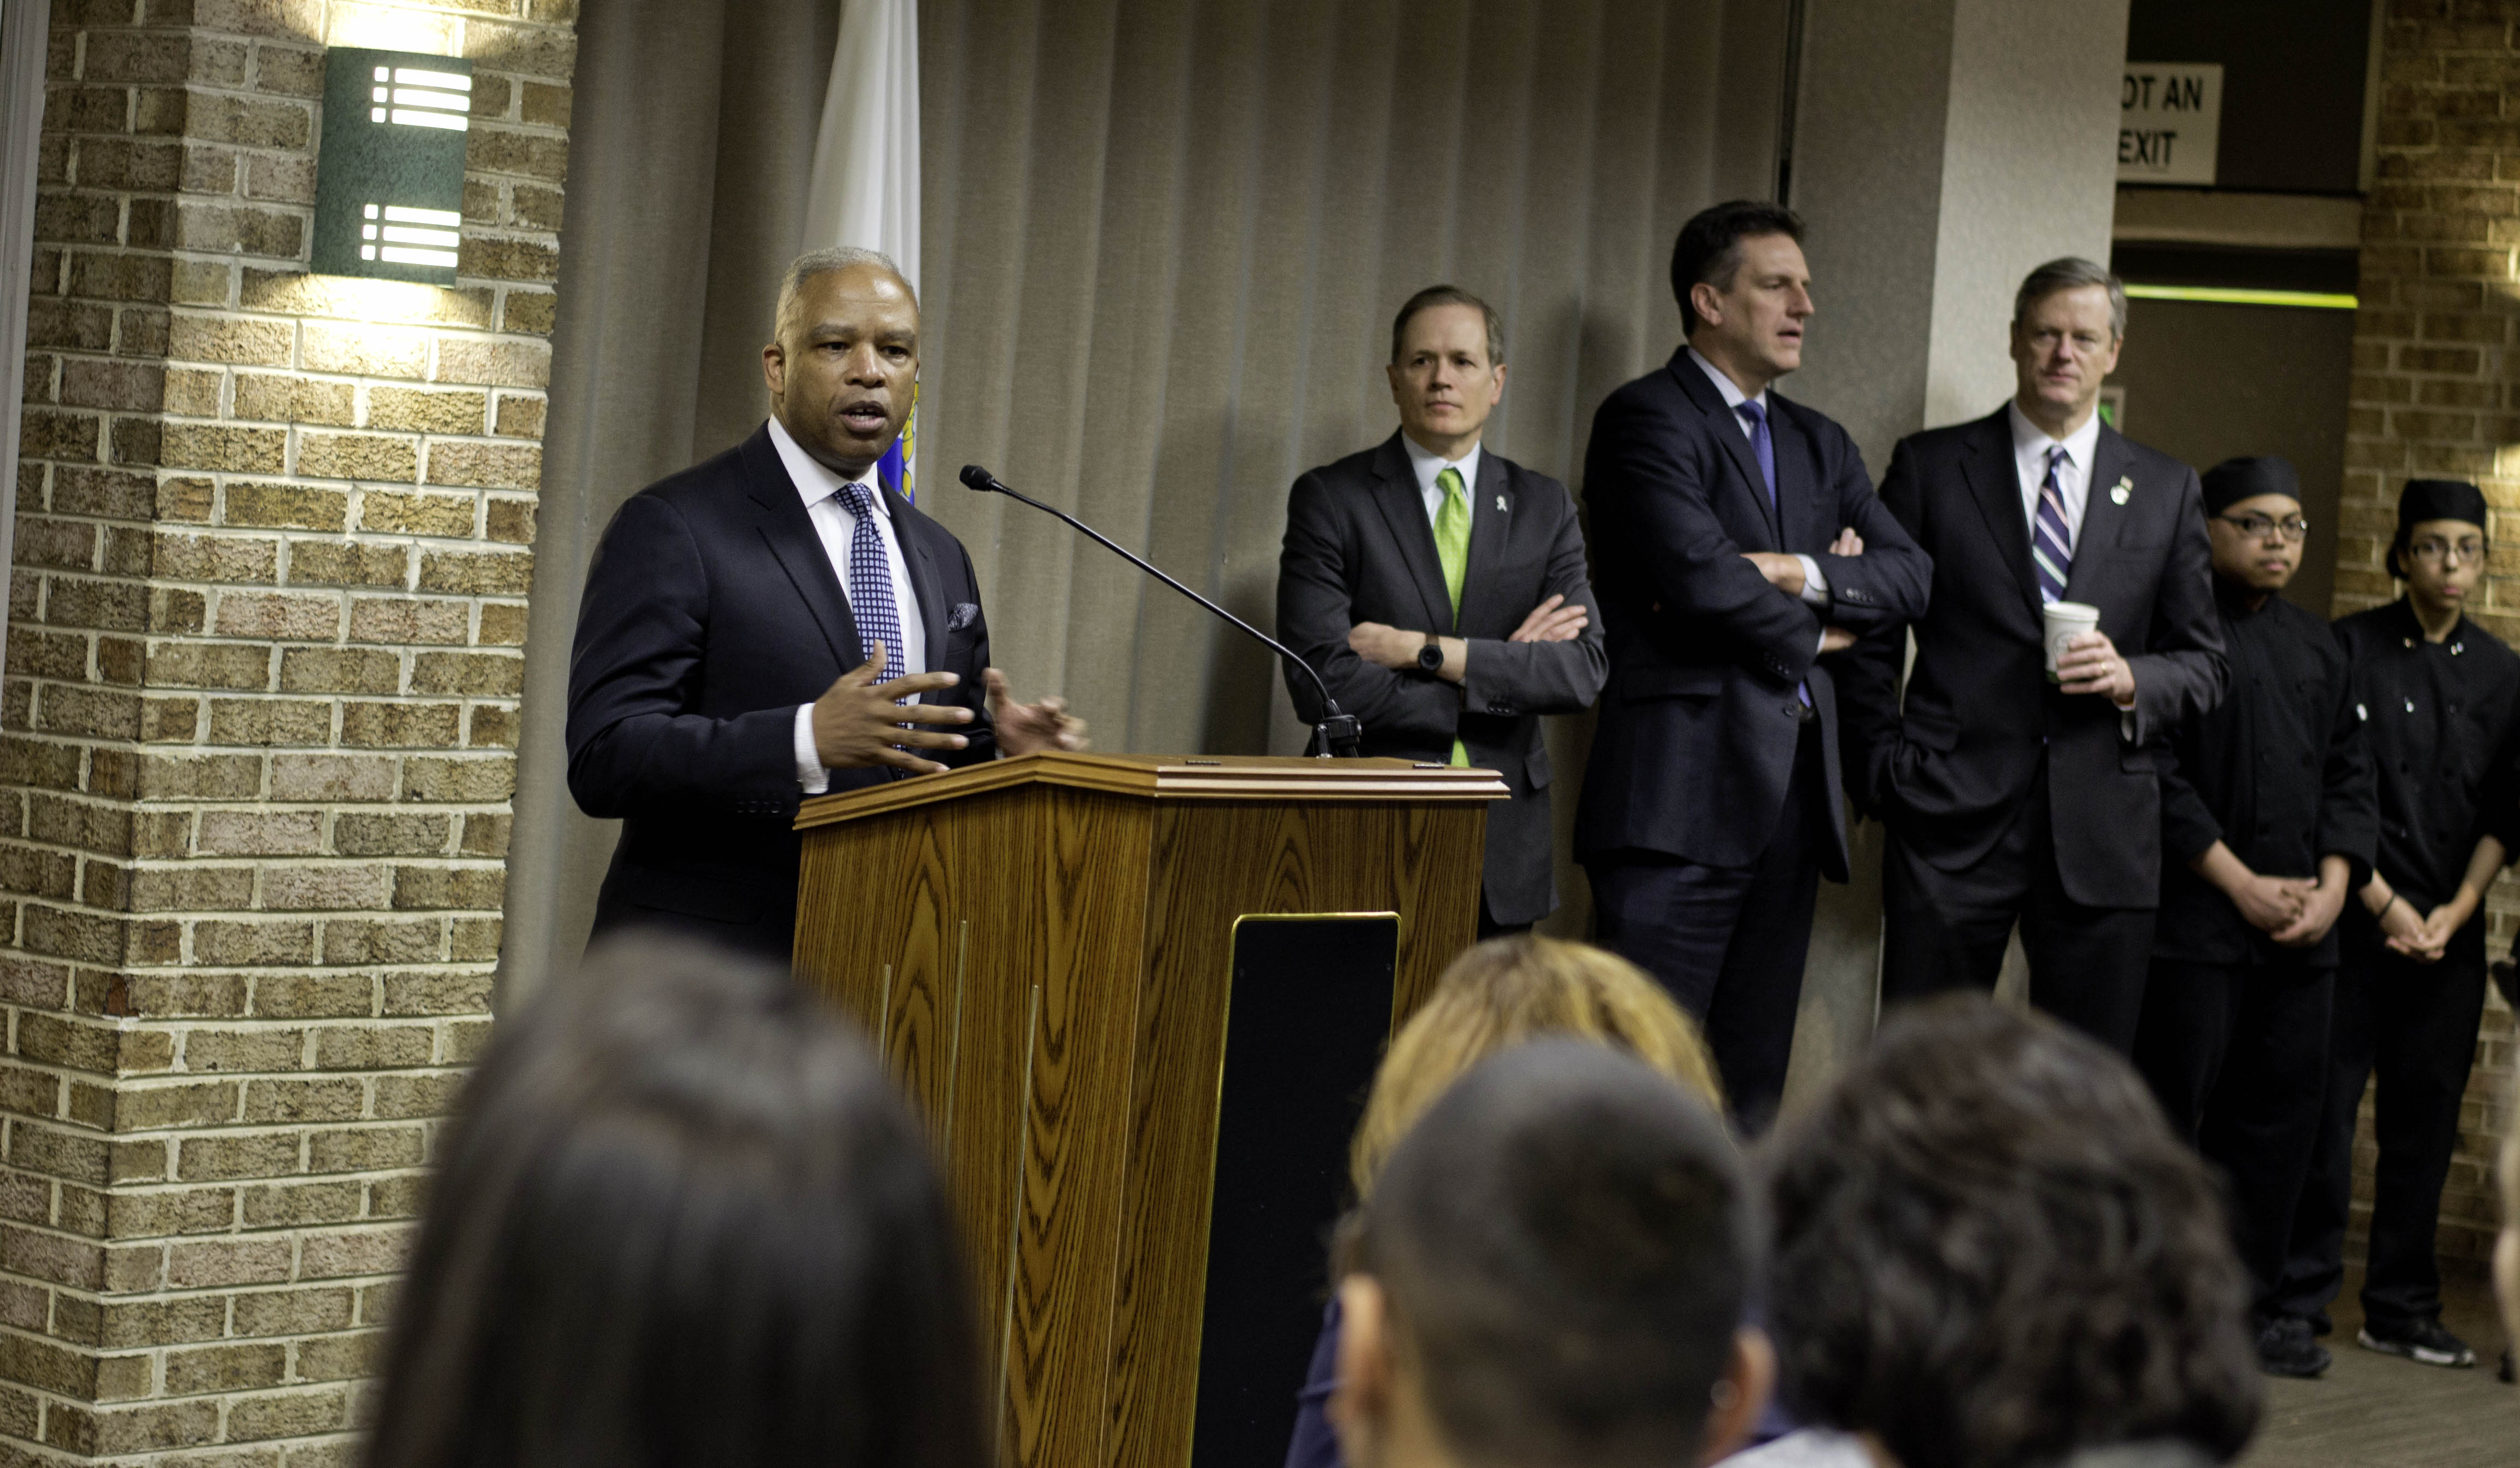 Labor and Workforce Development Secretary Ron Walker with Governor Baker and the other members of the Workforce Skills Cabinet in Lowell.